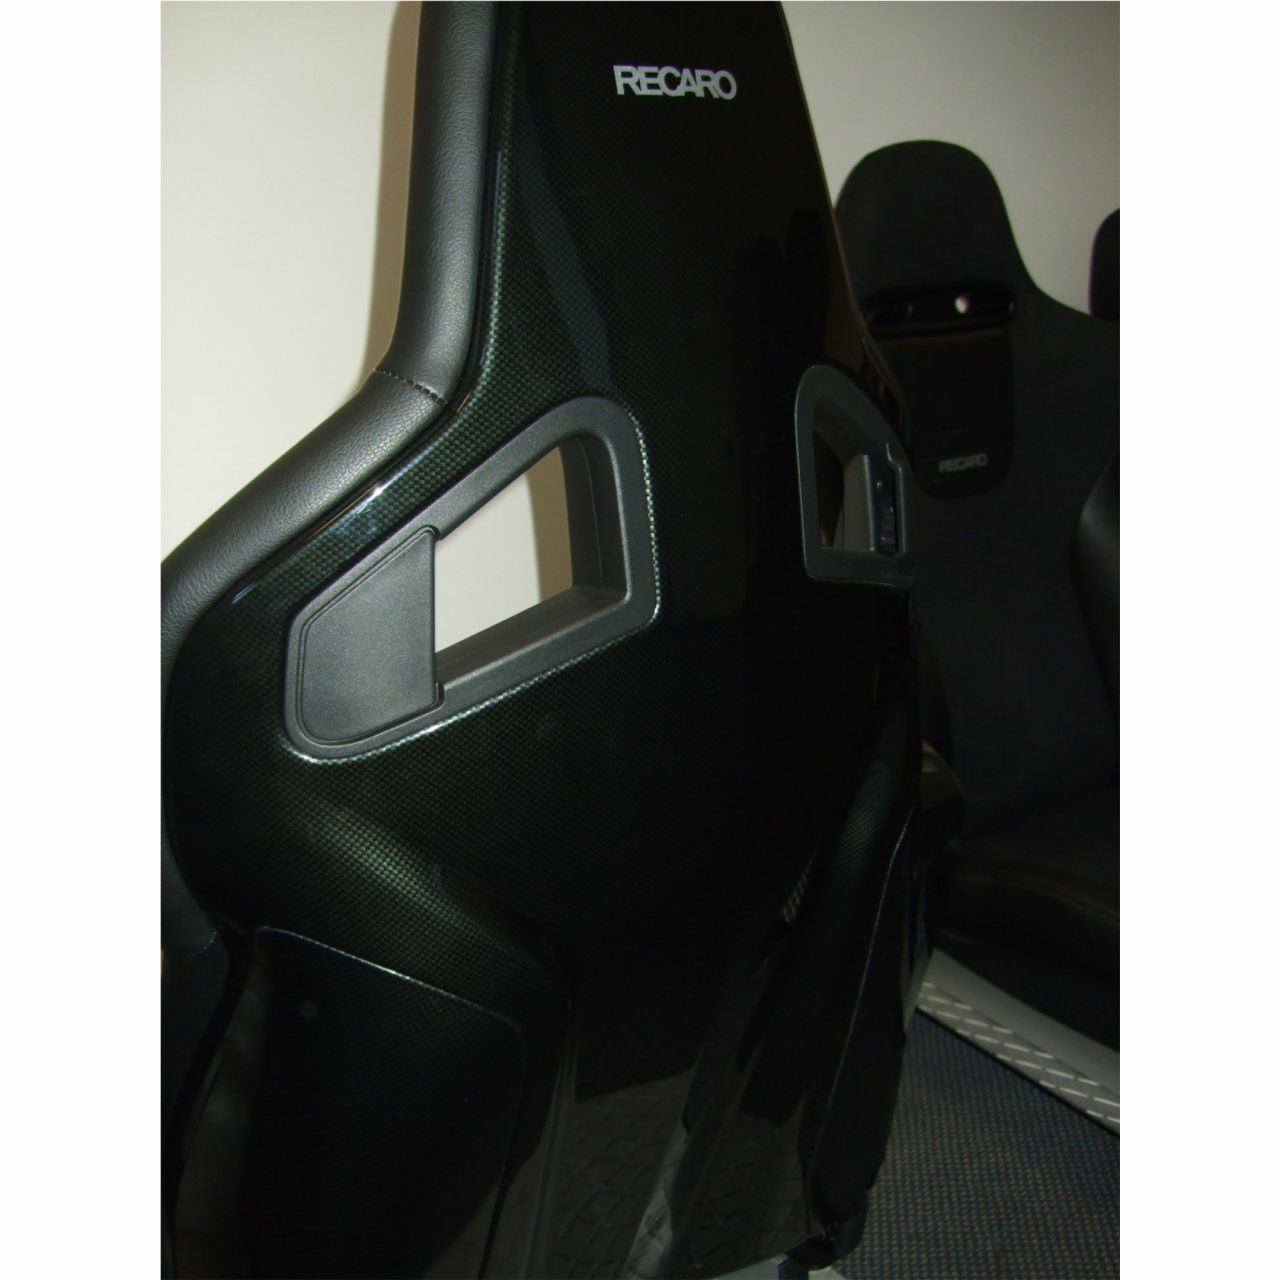 recaro sportster cs carbon reclining sport seat gsm. Black Bedroom Furniture Sets. Home Design Ideas